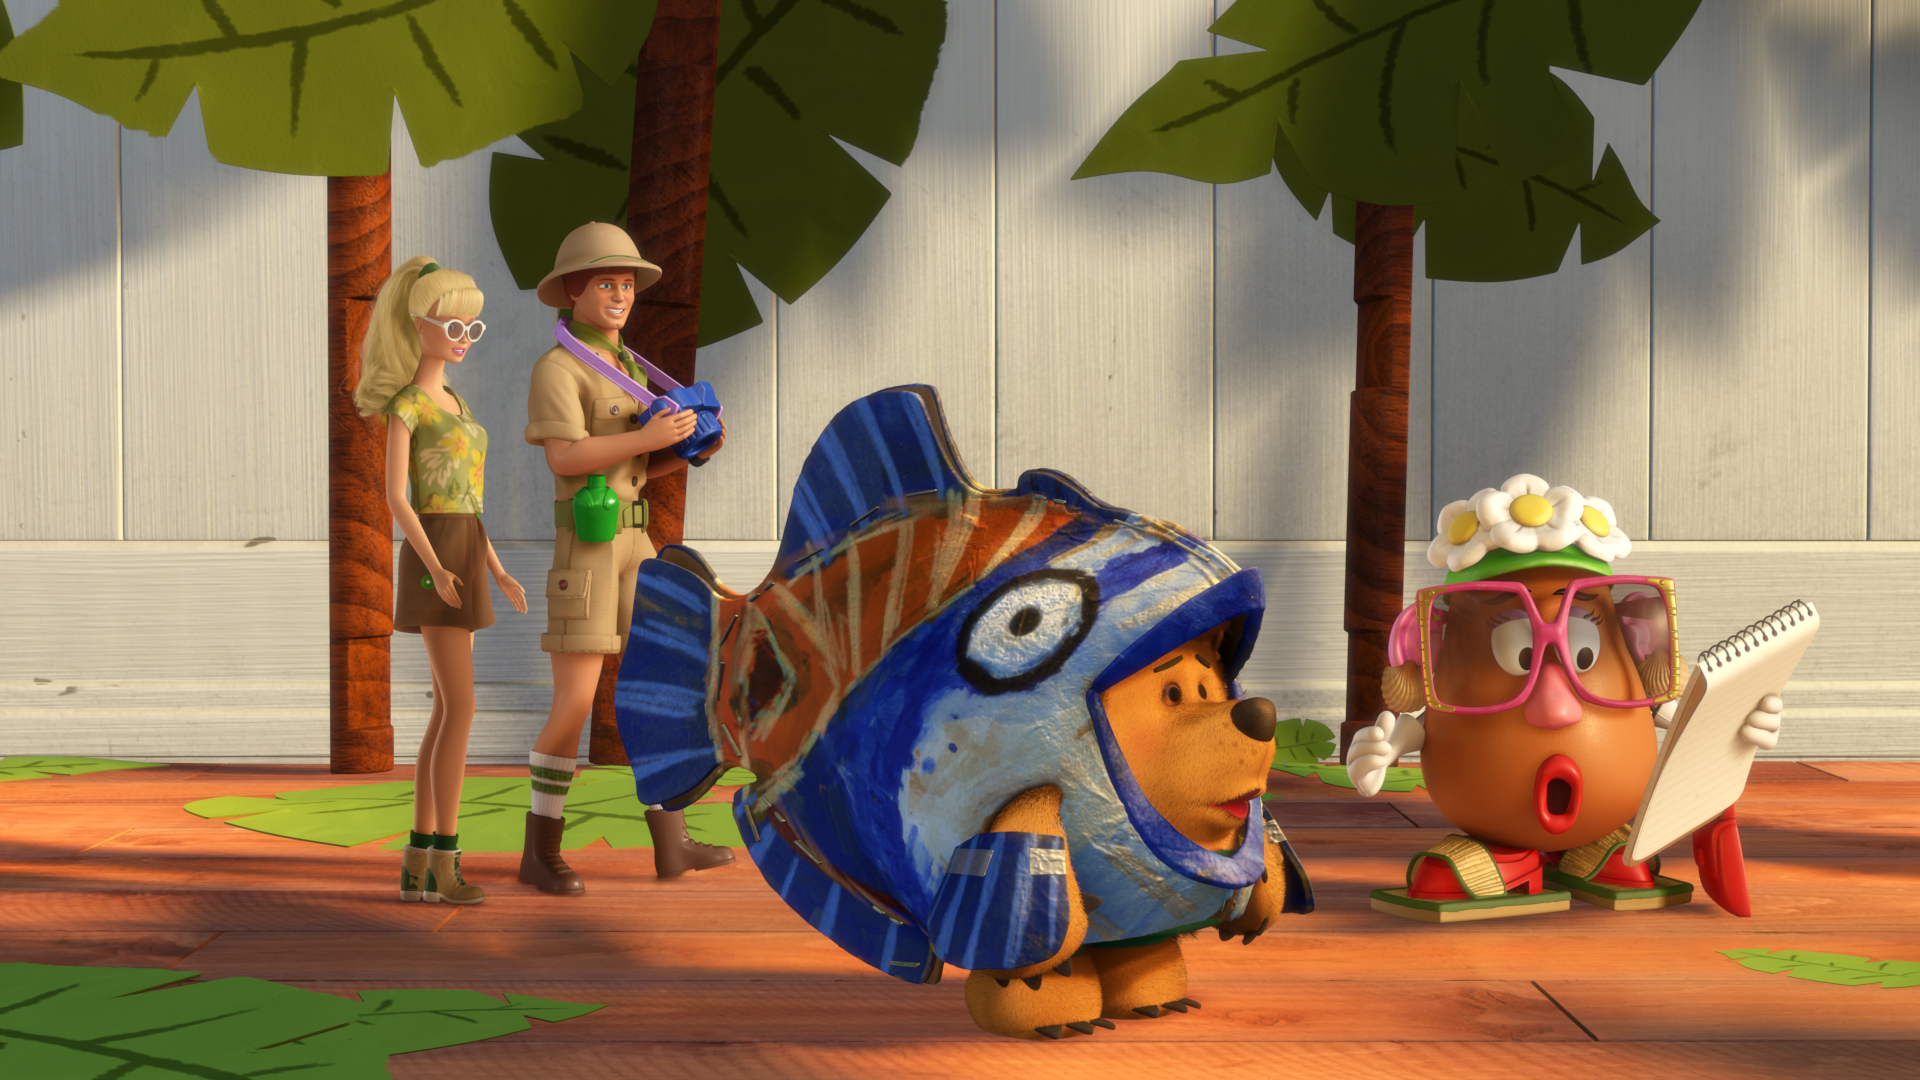 http://pixartimes.files.wordpress.com/2011/02/toy-story-hawaiian-vacation-hi-res-image-2.jpg